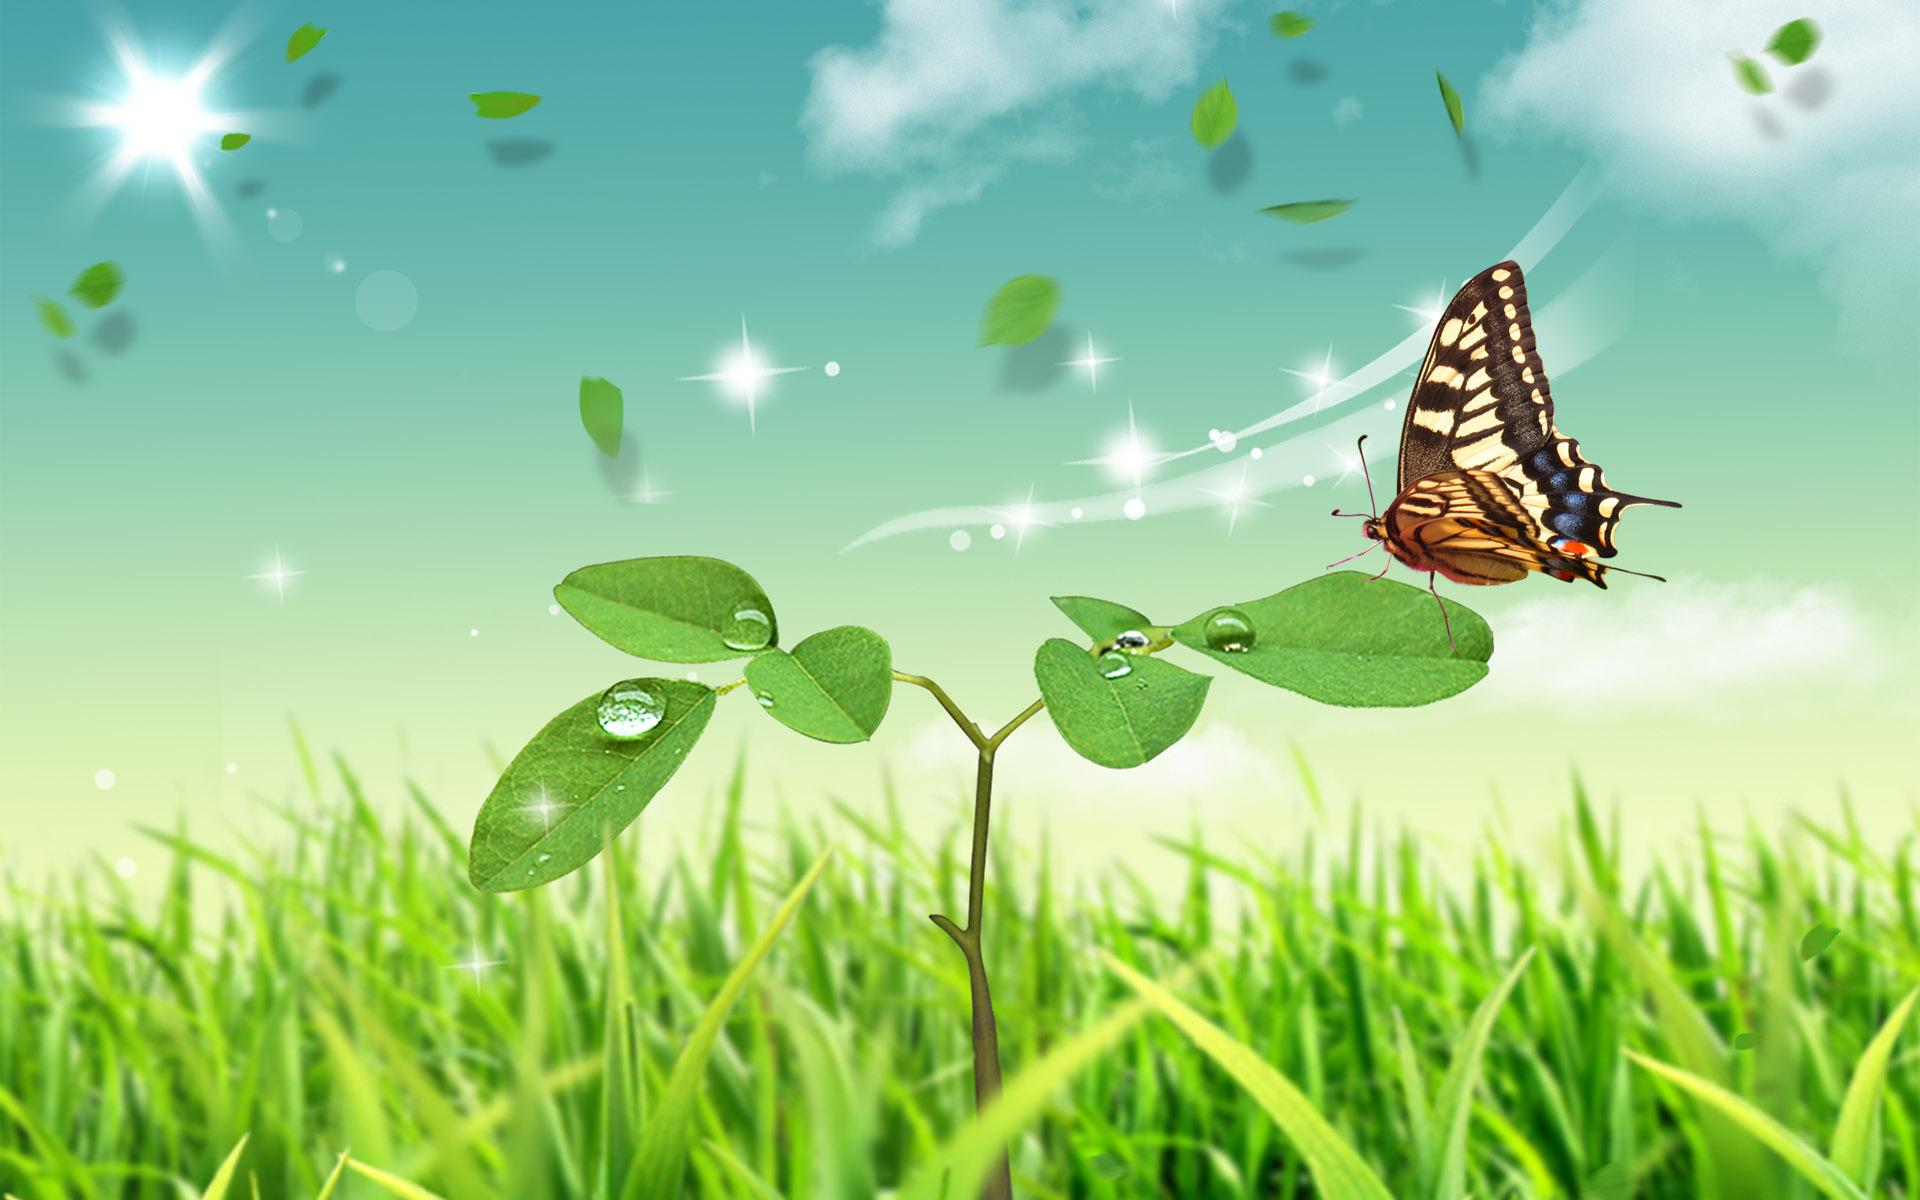 Abstract Nature Butterfly Hd Wallpaper Download Wallpapers Page